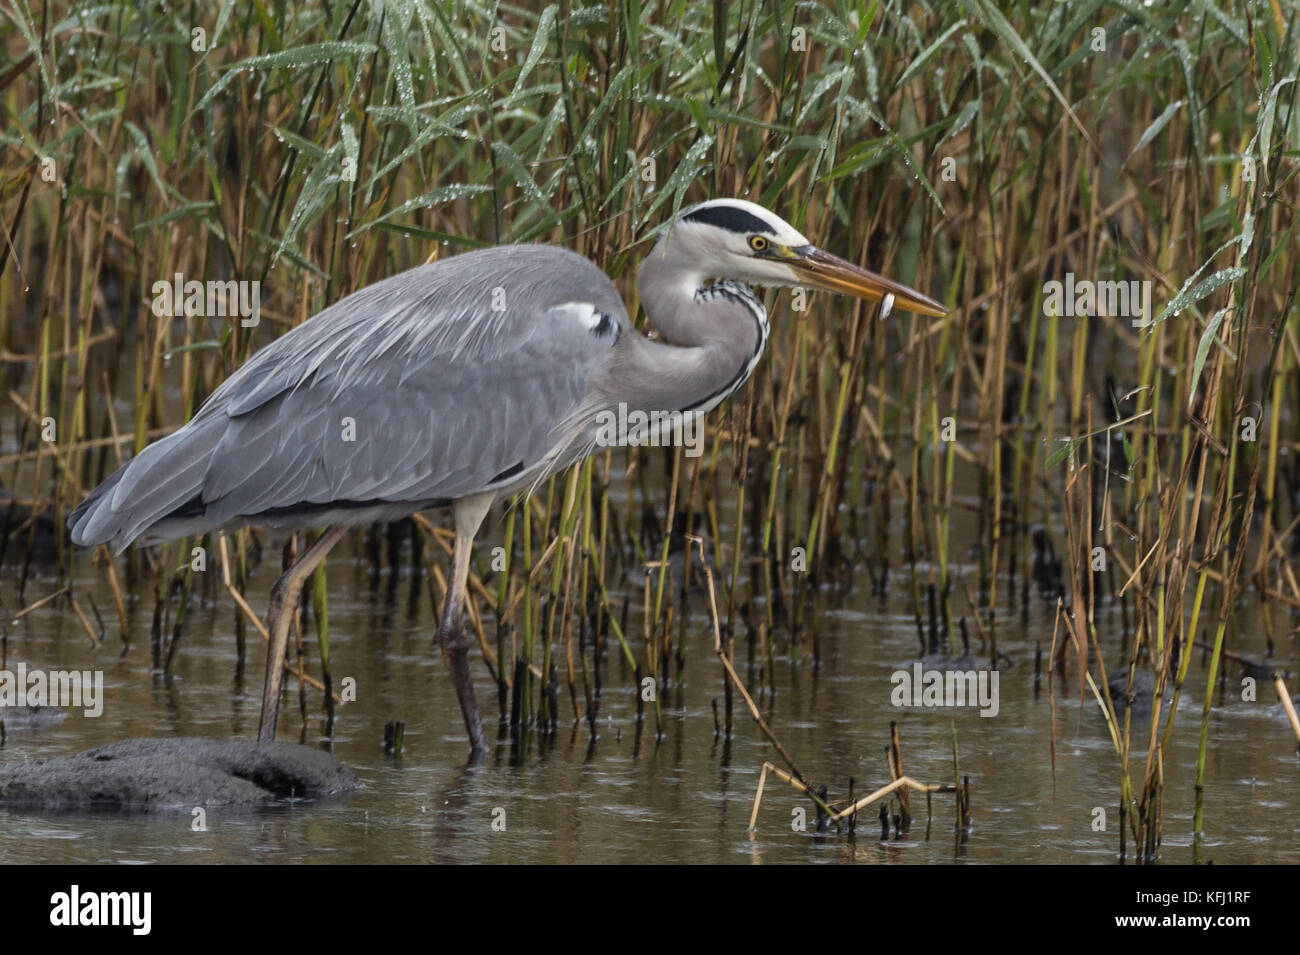 Grey Heron feeding on Lough Neagh in Northern Ireland.Herons are large, striking birds often spotted standing motionless - Stock Image